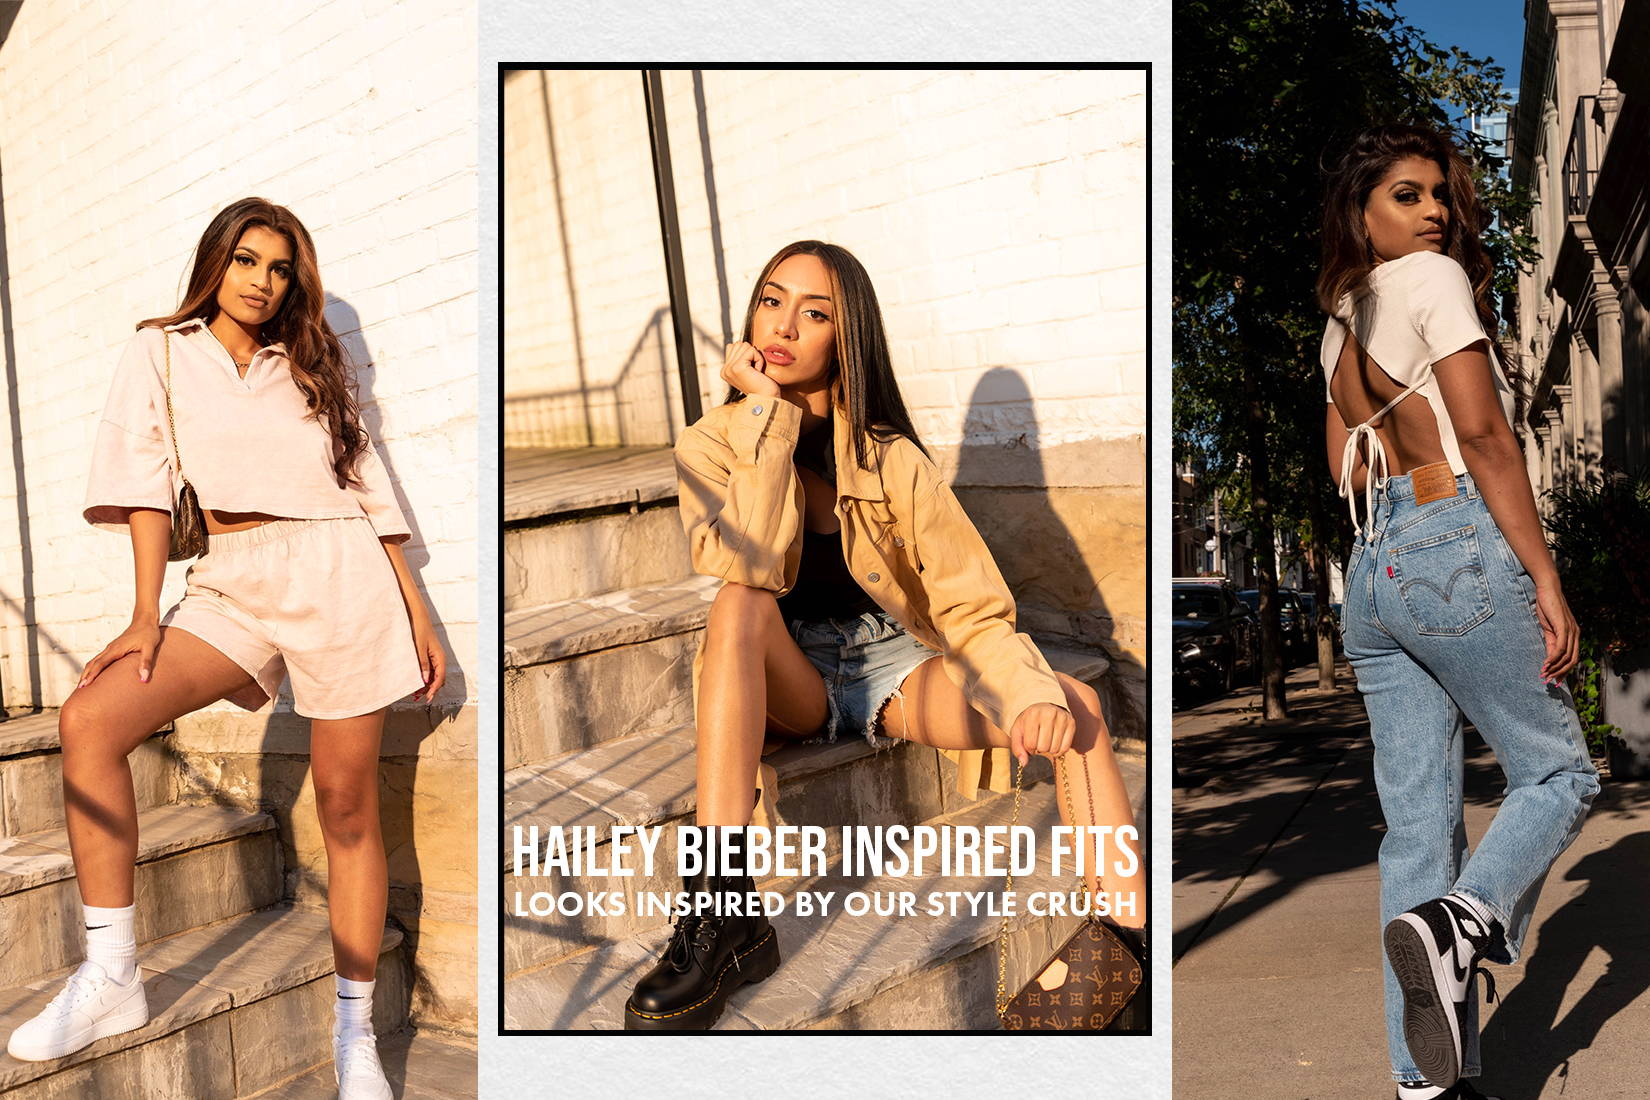 items inspired by Hailey Bieber